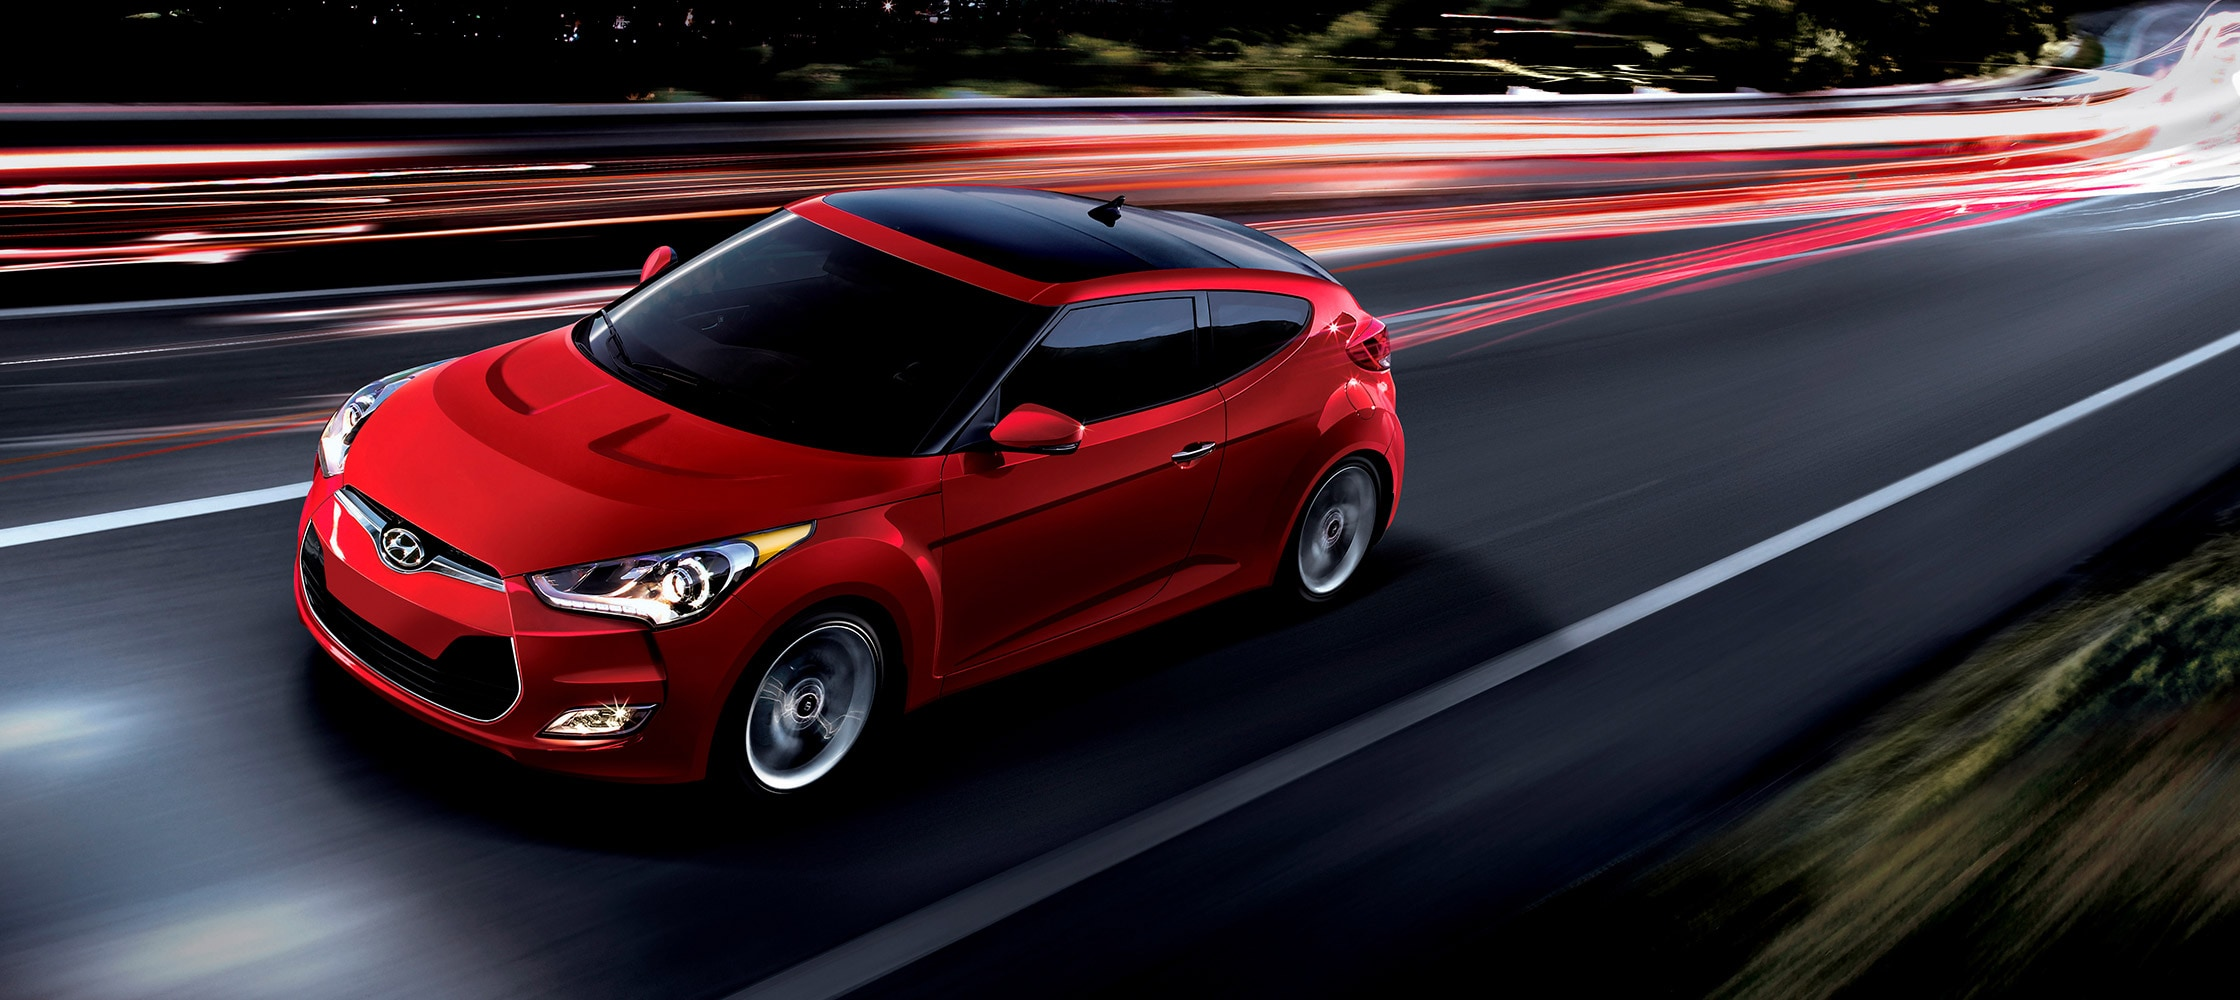 Exterior action photo of red Hyundai Veloster 2016 three door hatchback with large panoramic sunroof